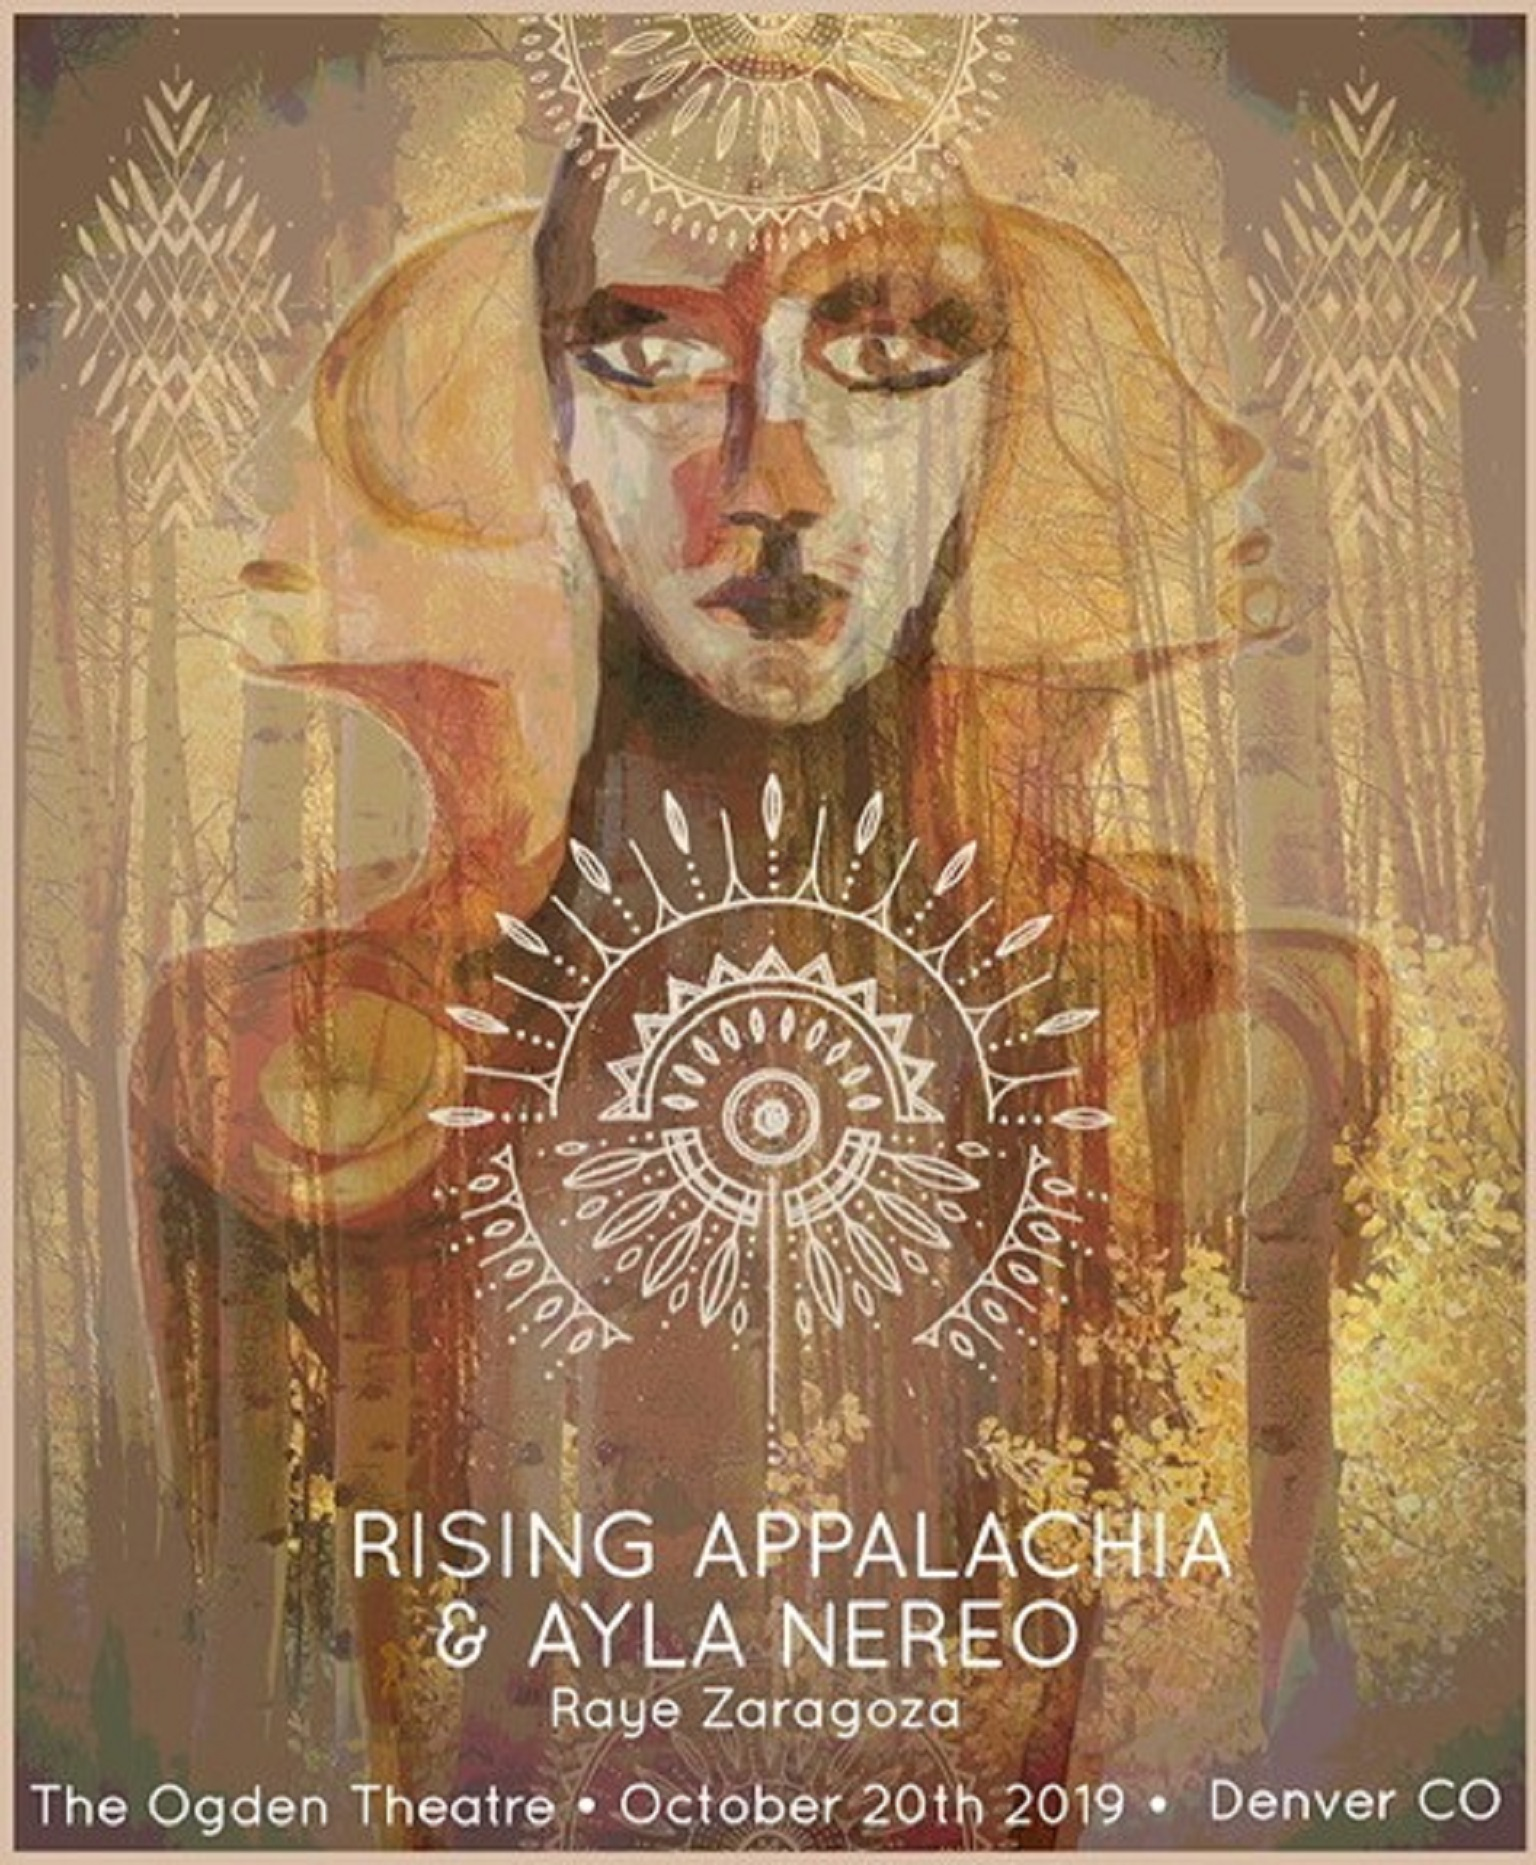 Rising Appalachia + Ayla Nereo to play the Ogden Theatre